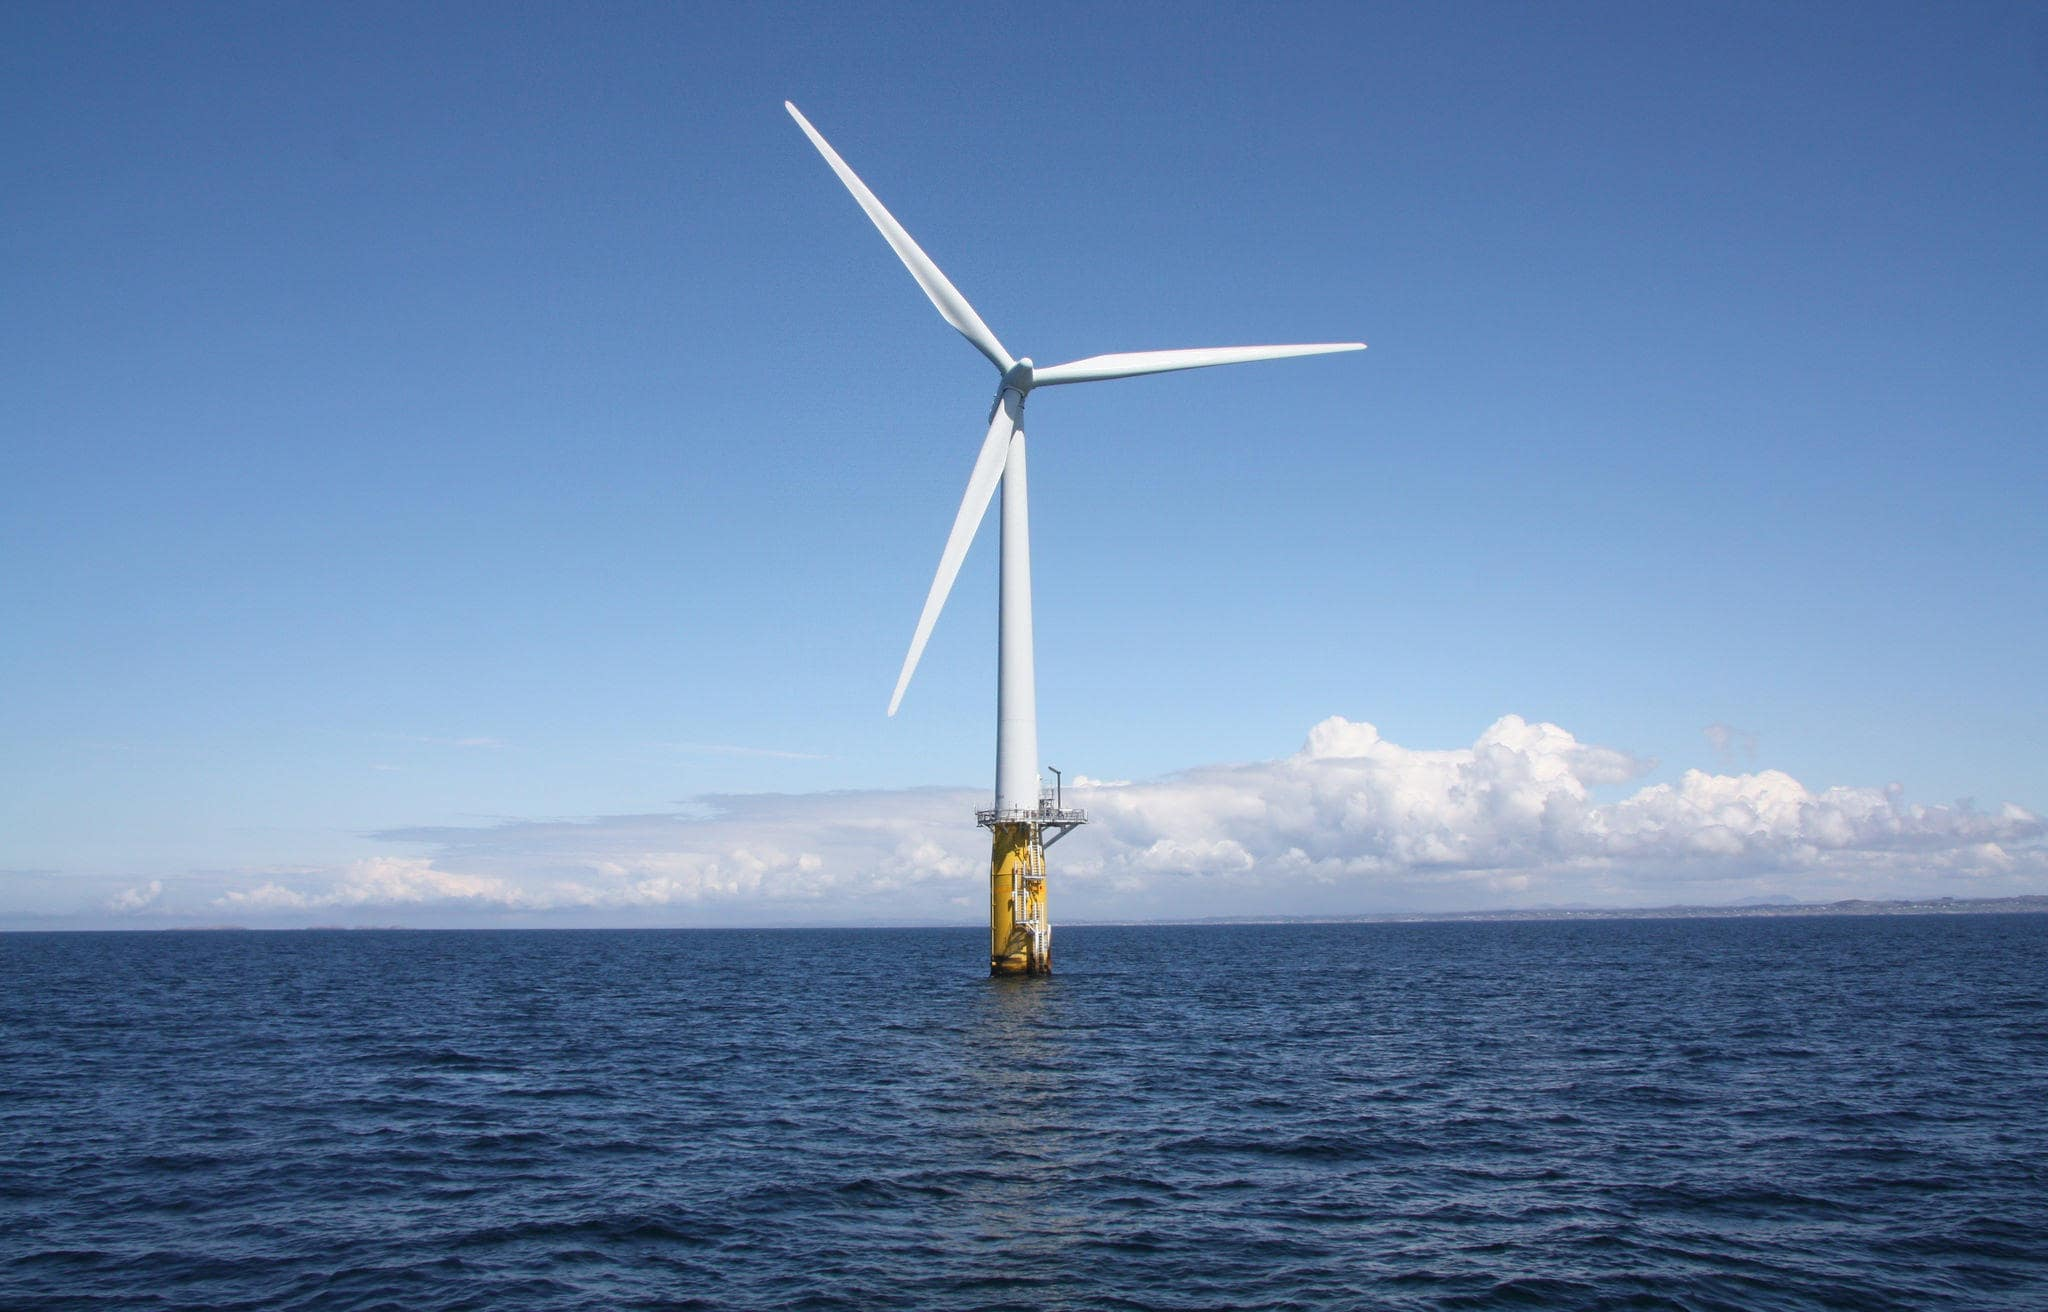 A wind farm with a capacity of 88 MW will be built near Norway